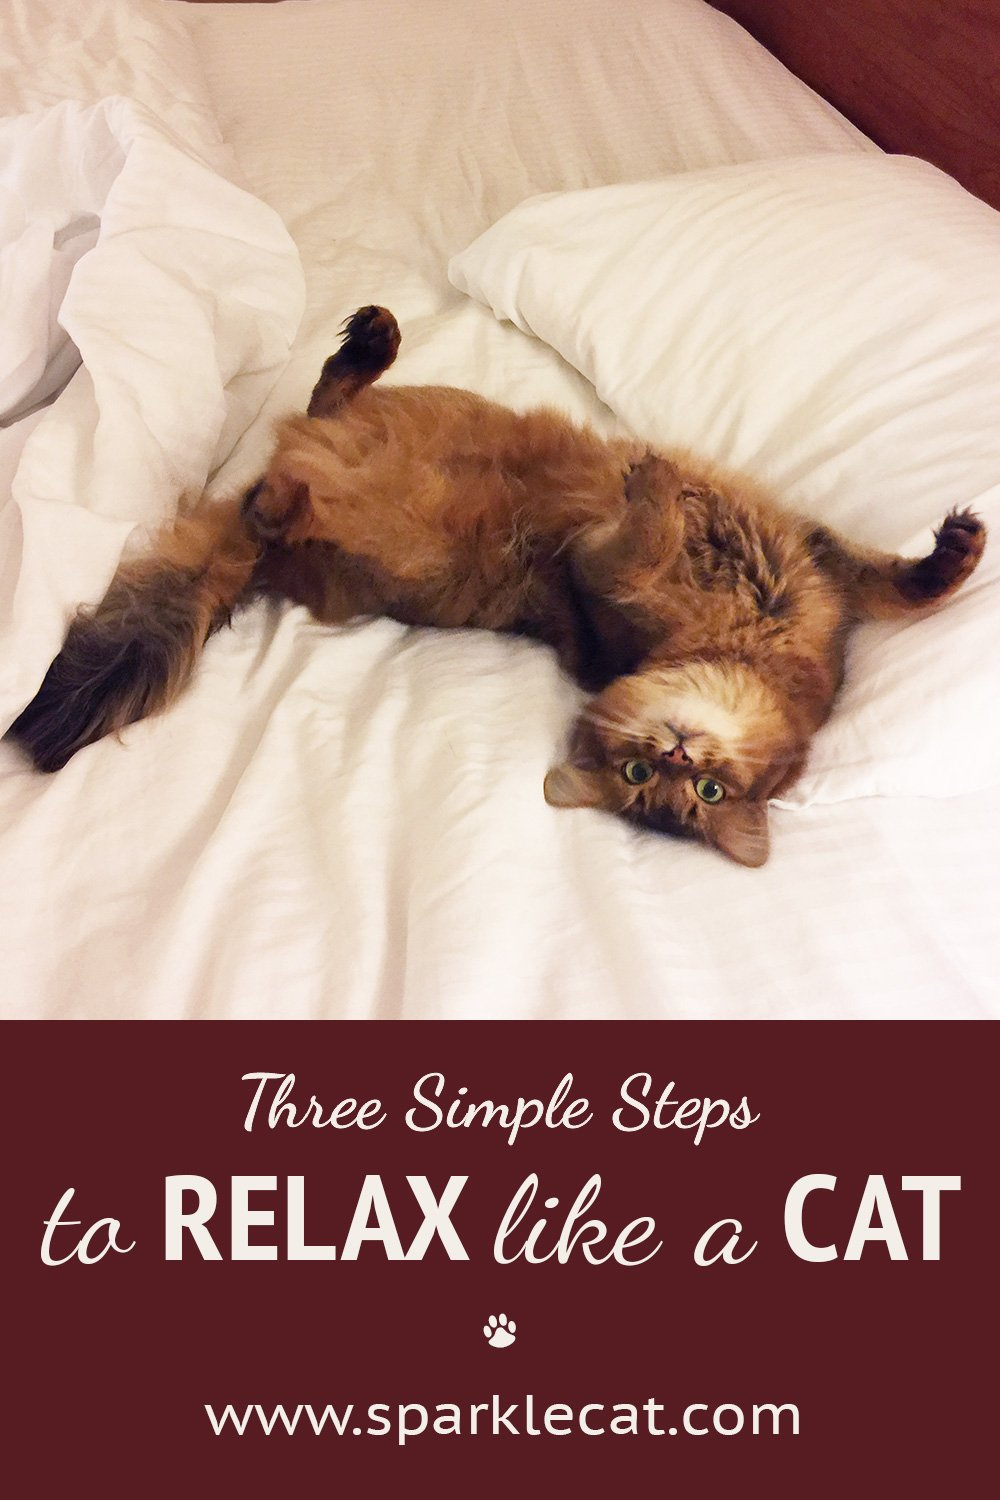 Relax Like a Cat: A How-To in Three Simple Steps